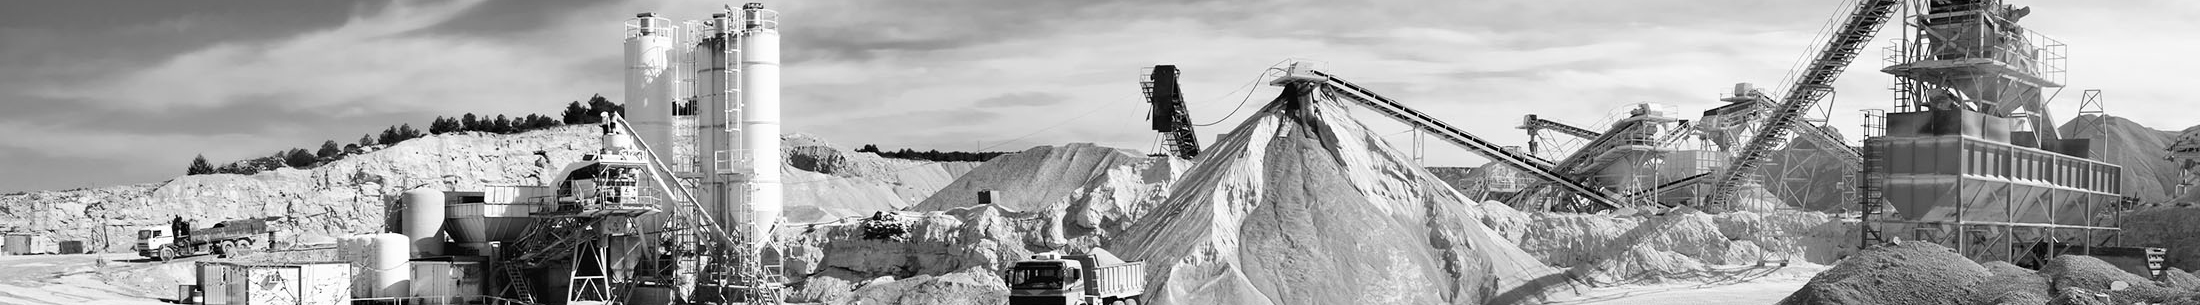 Mining & Materials - Rotolok South Africa